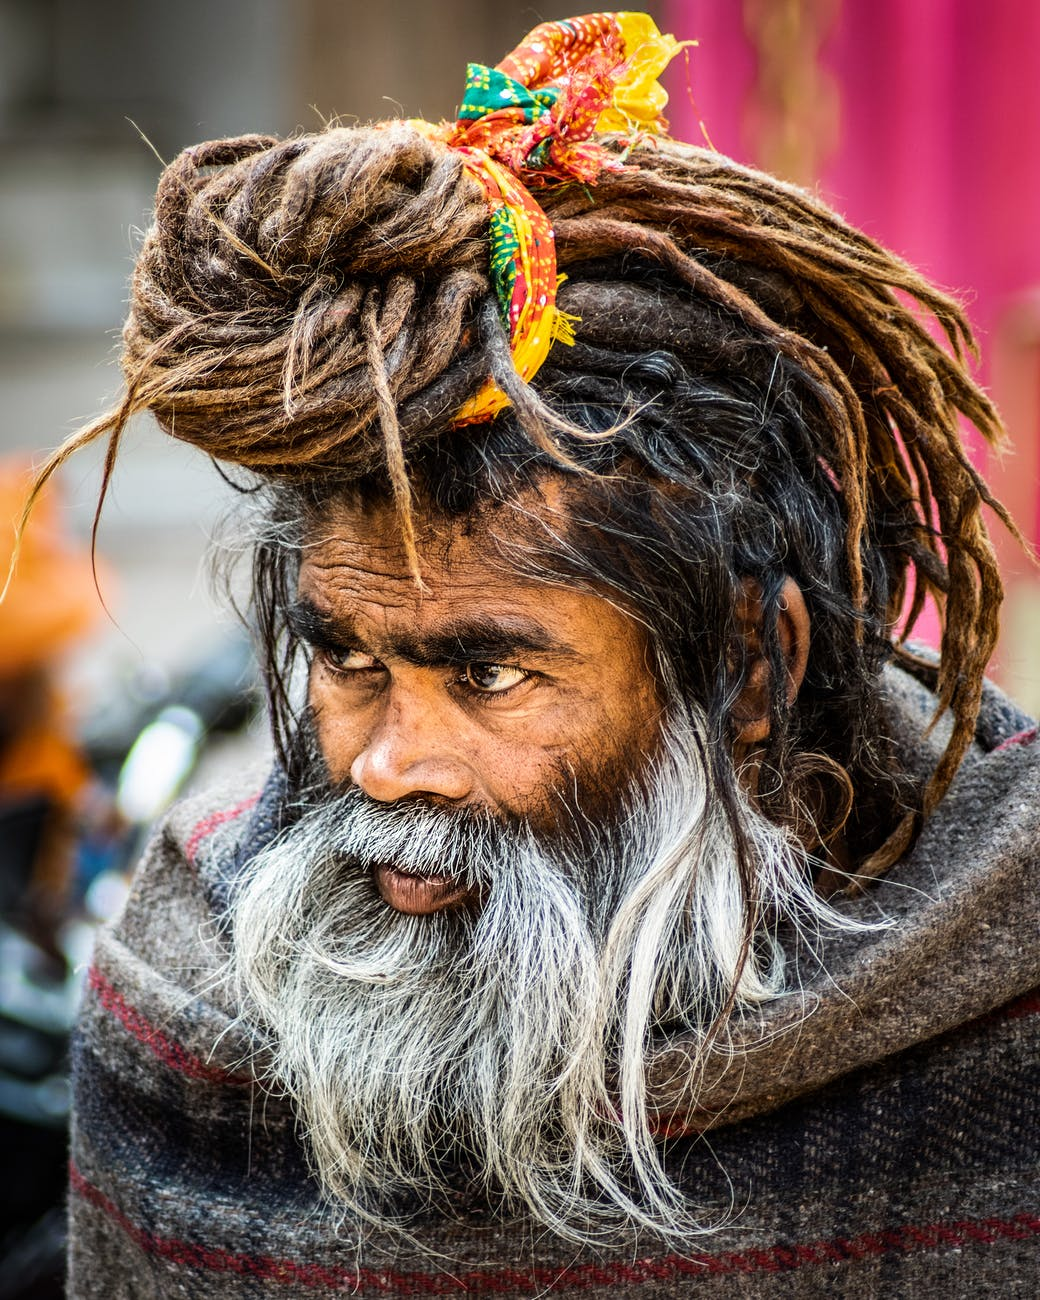 close up photo of man with dreadlocks